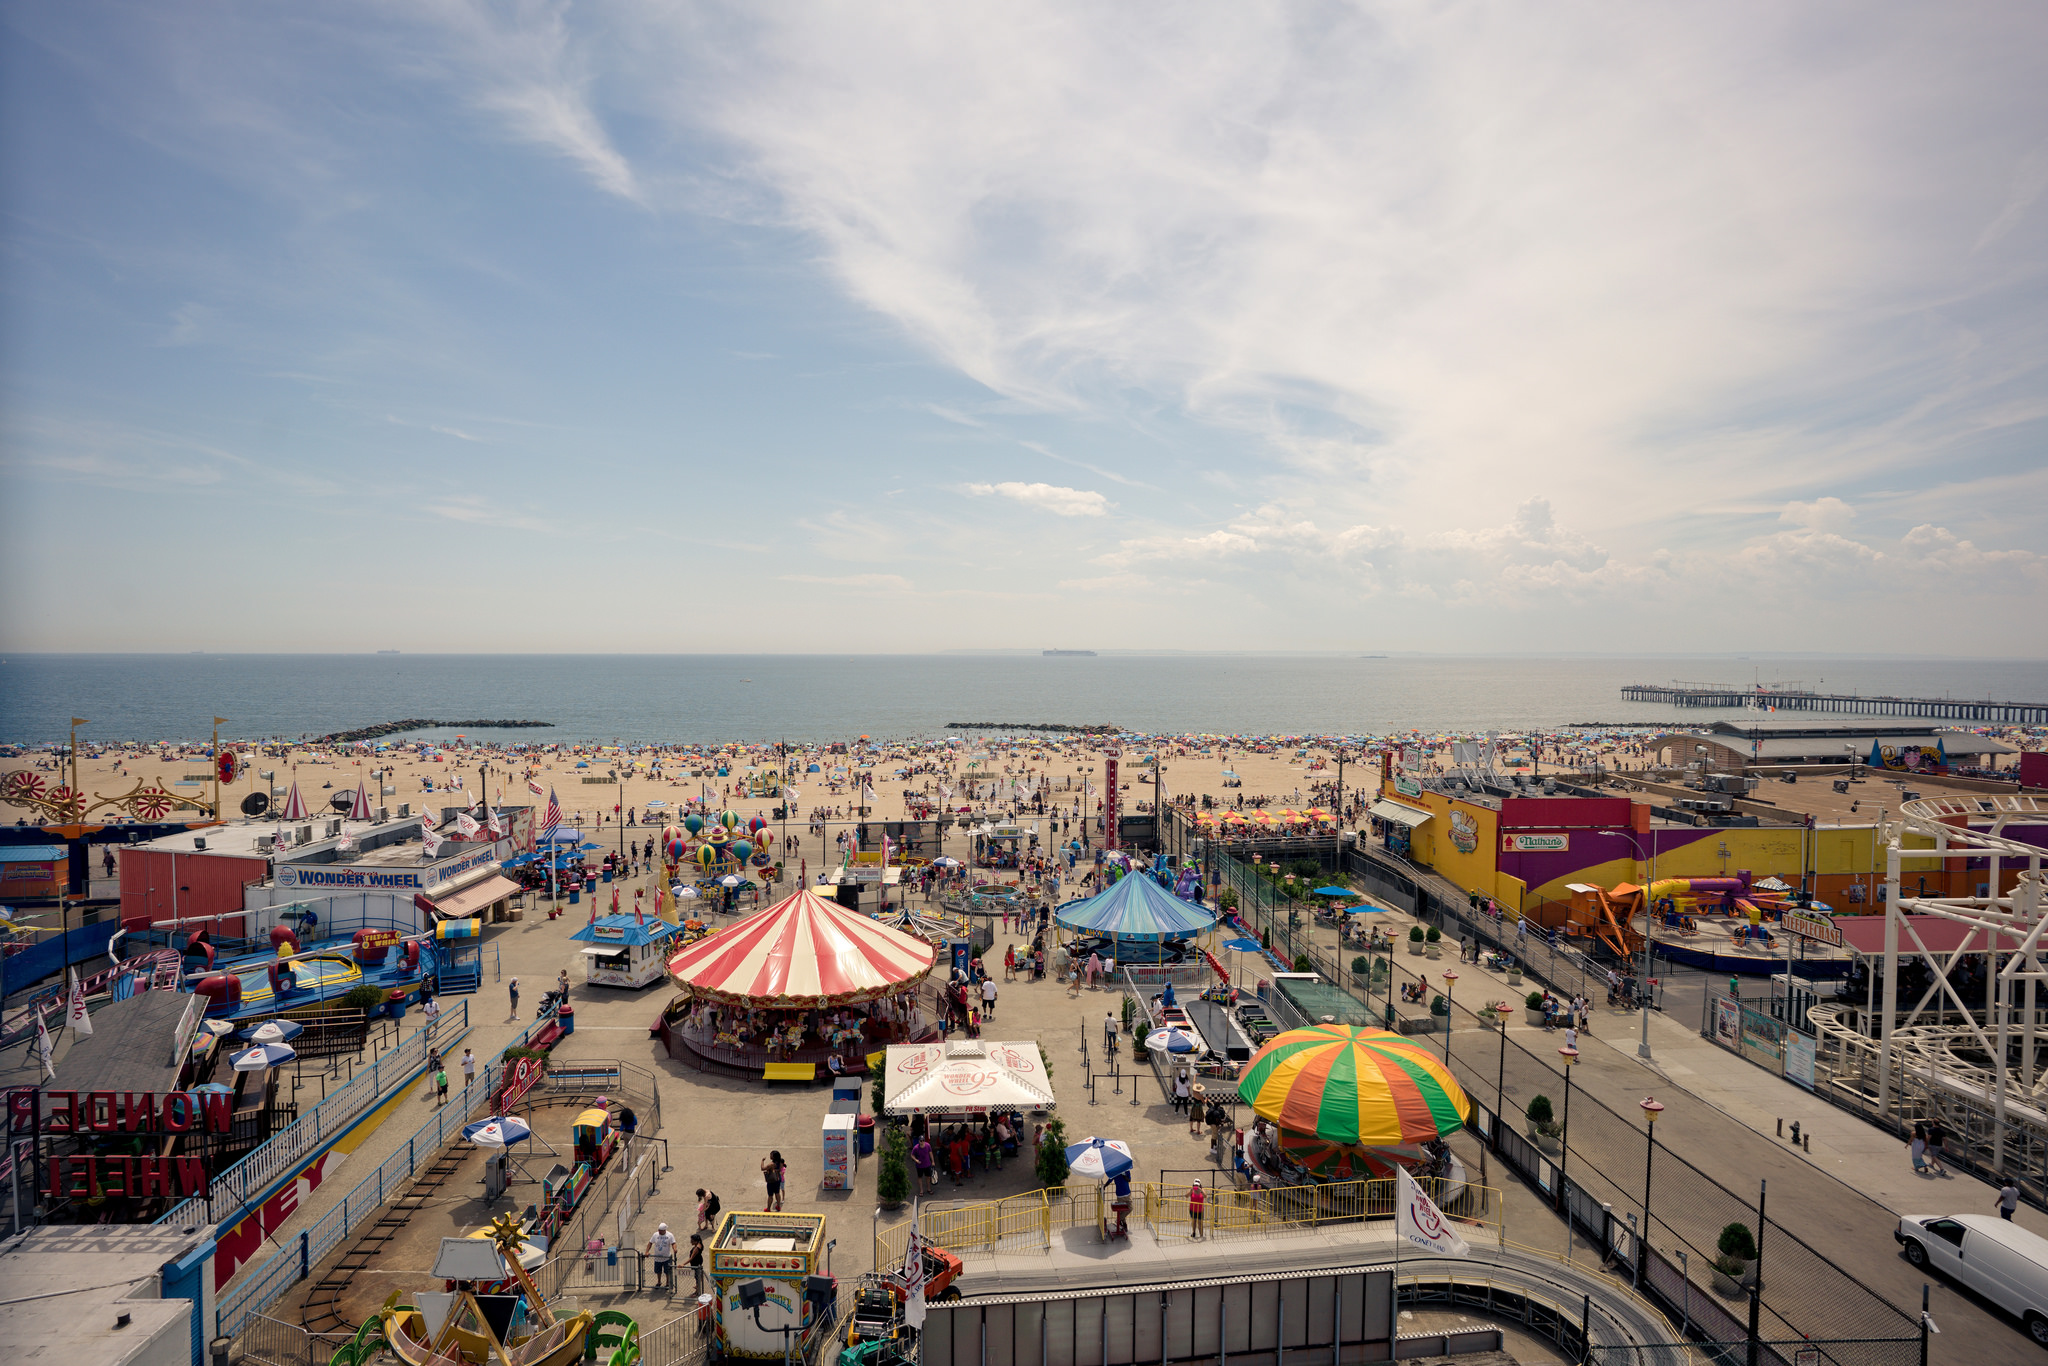 (Sony ILCE-7RM2 + Zeiss Batis 18mm f/2.8) ISO 100 - A view of Coney Island at 18mm from the top of the Wonder Wheel